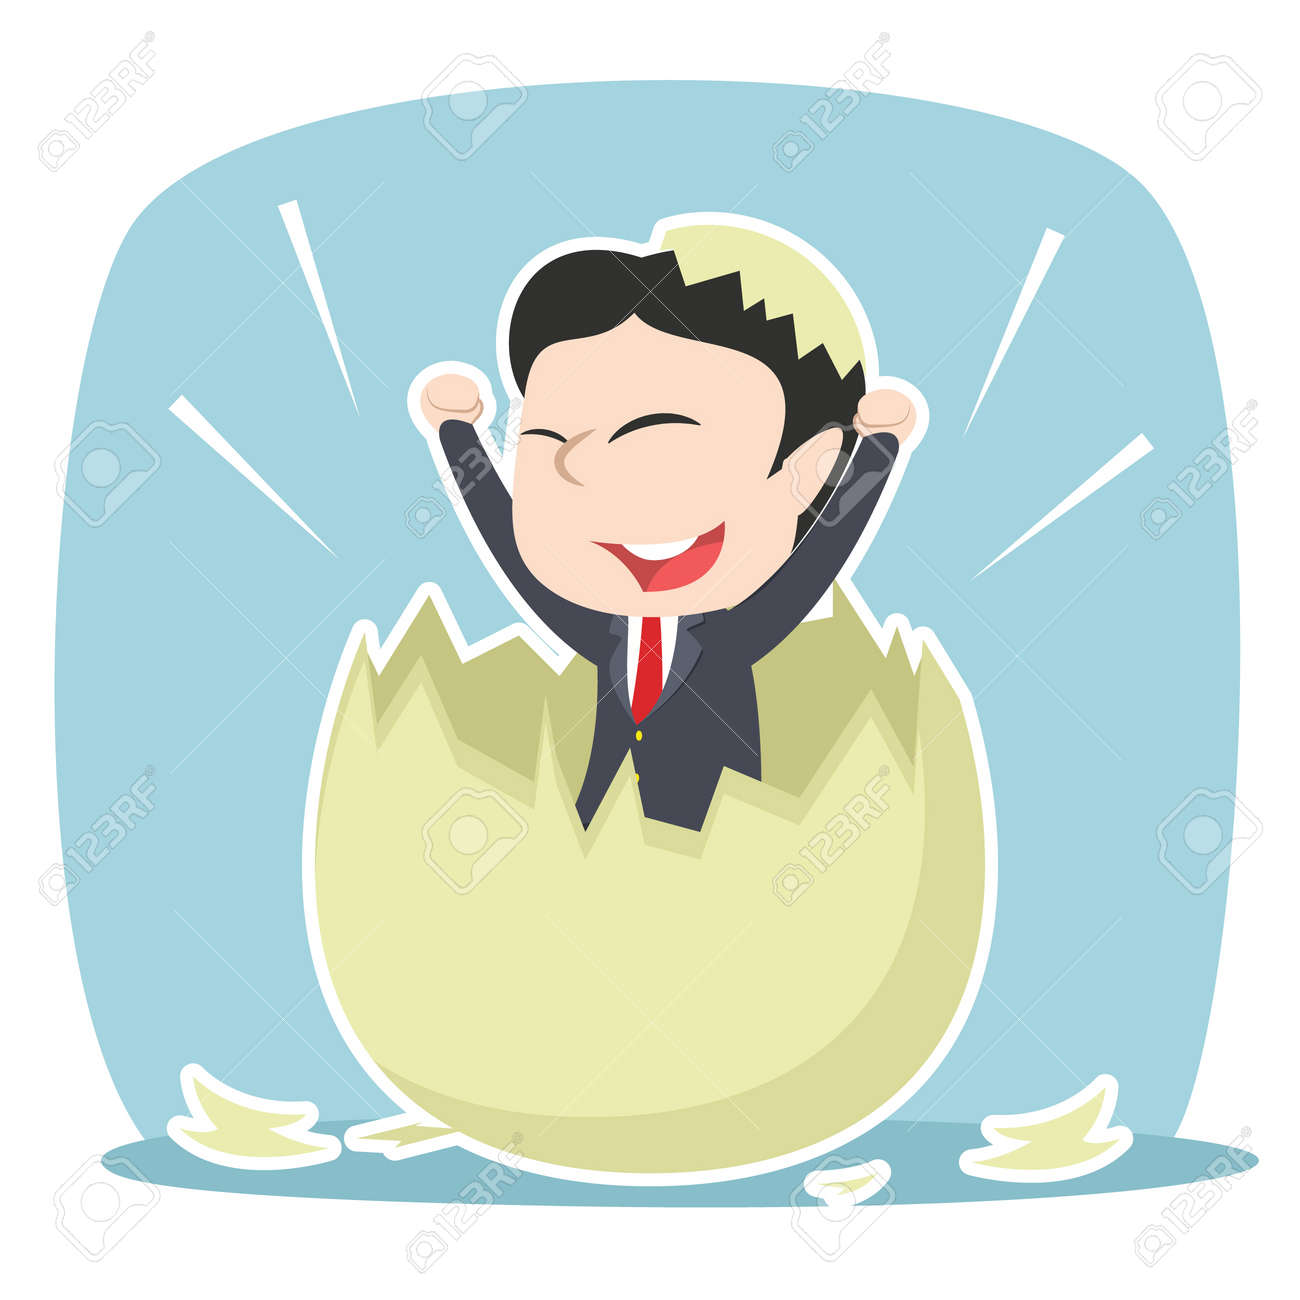 asian businessman hatched from egg - 90081999